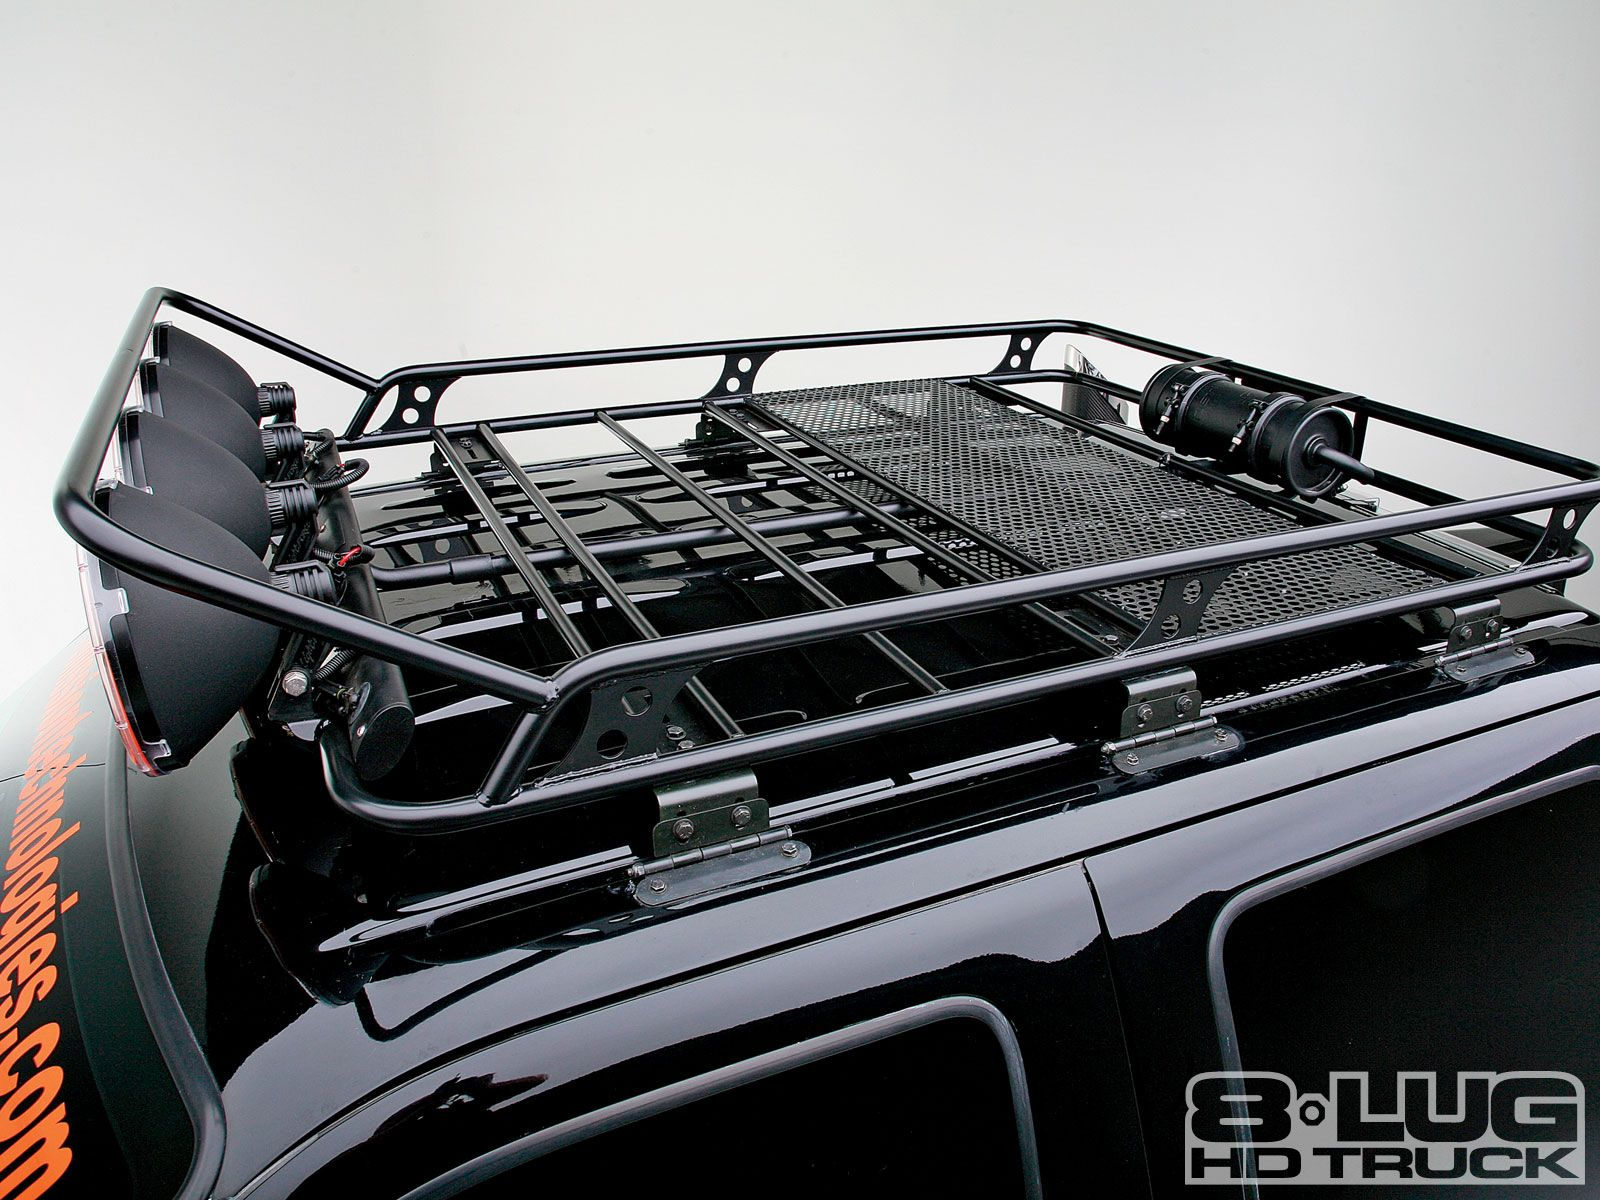 Ford F-250 Roof Rack